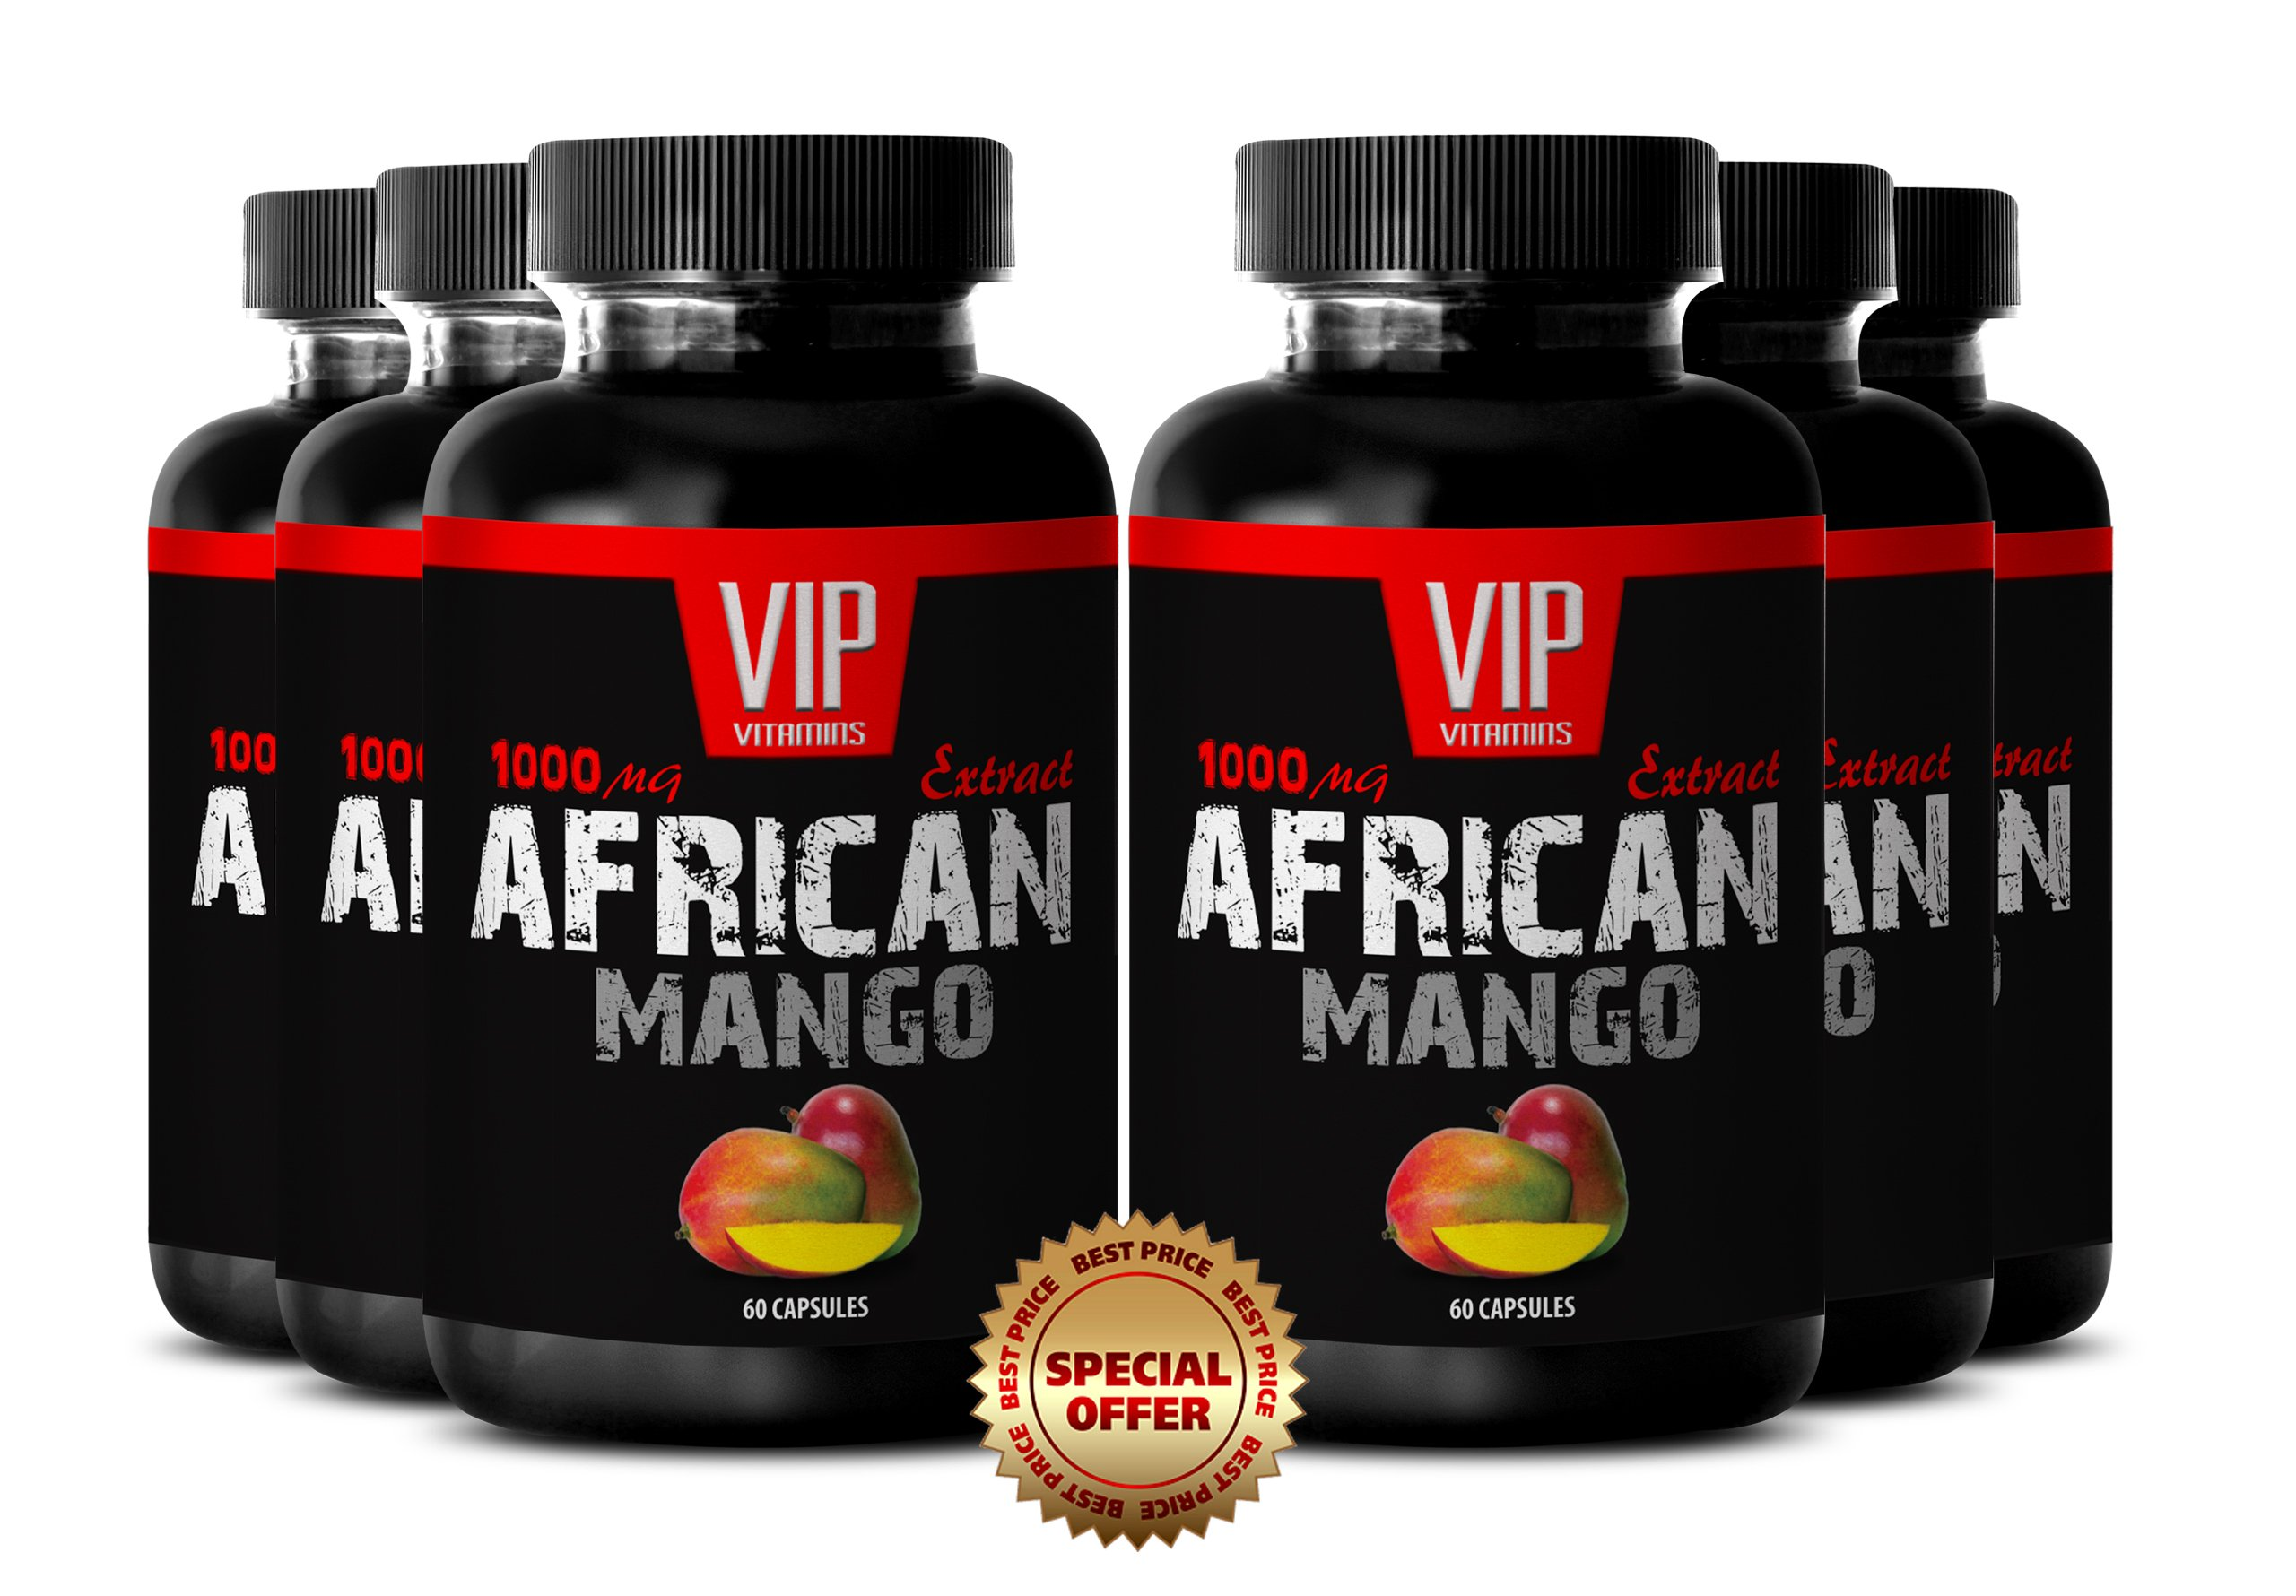 Supreme African Mango Weight Loss- African Mango 1000mg - African Mango Extract - Weight Loss (6 Bottles 360 Capsules) by MANGO